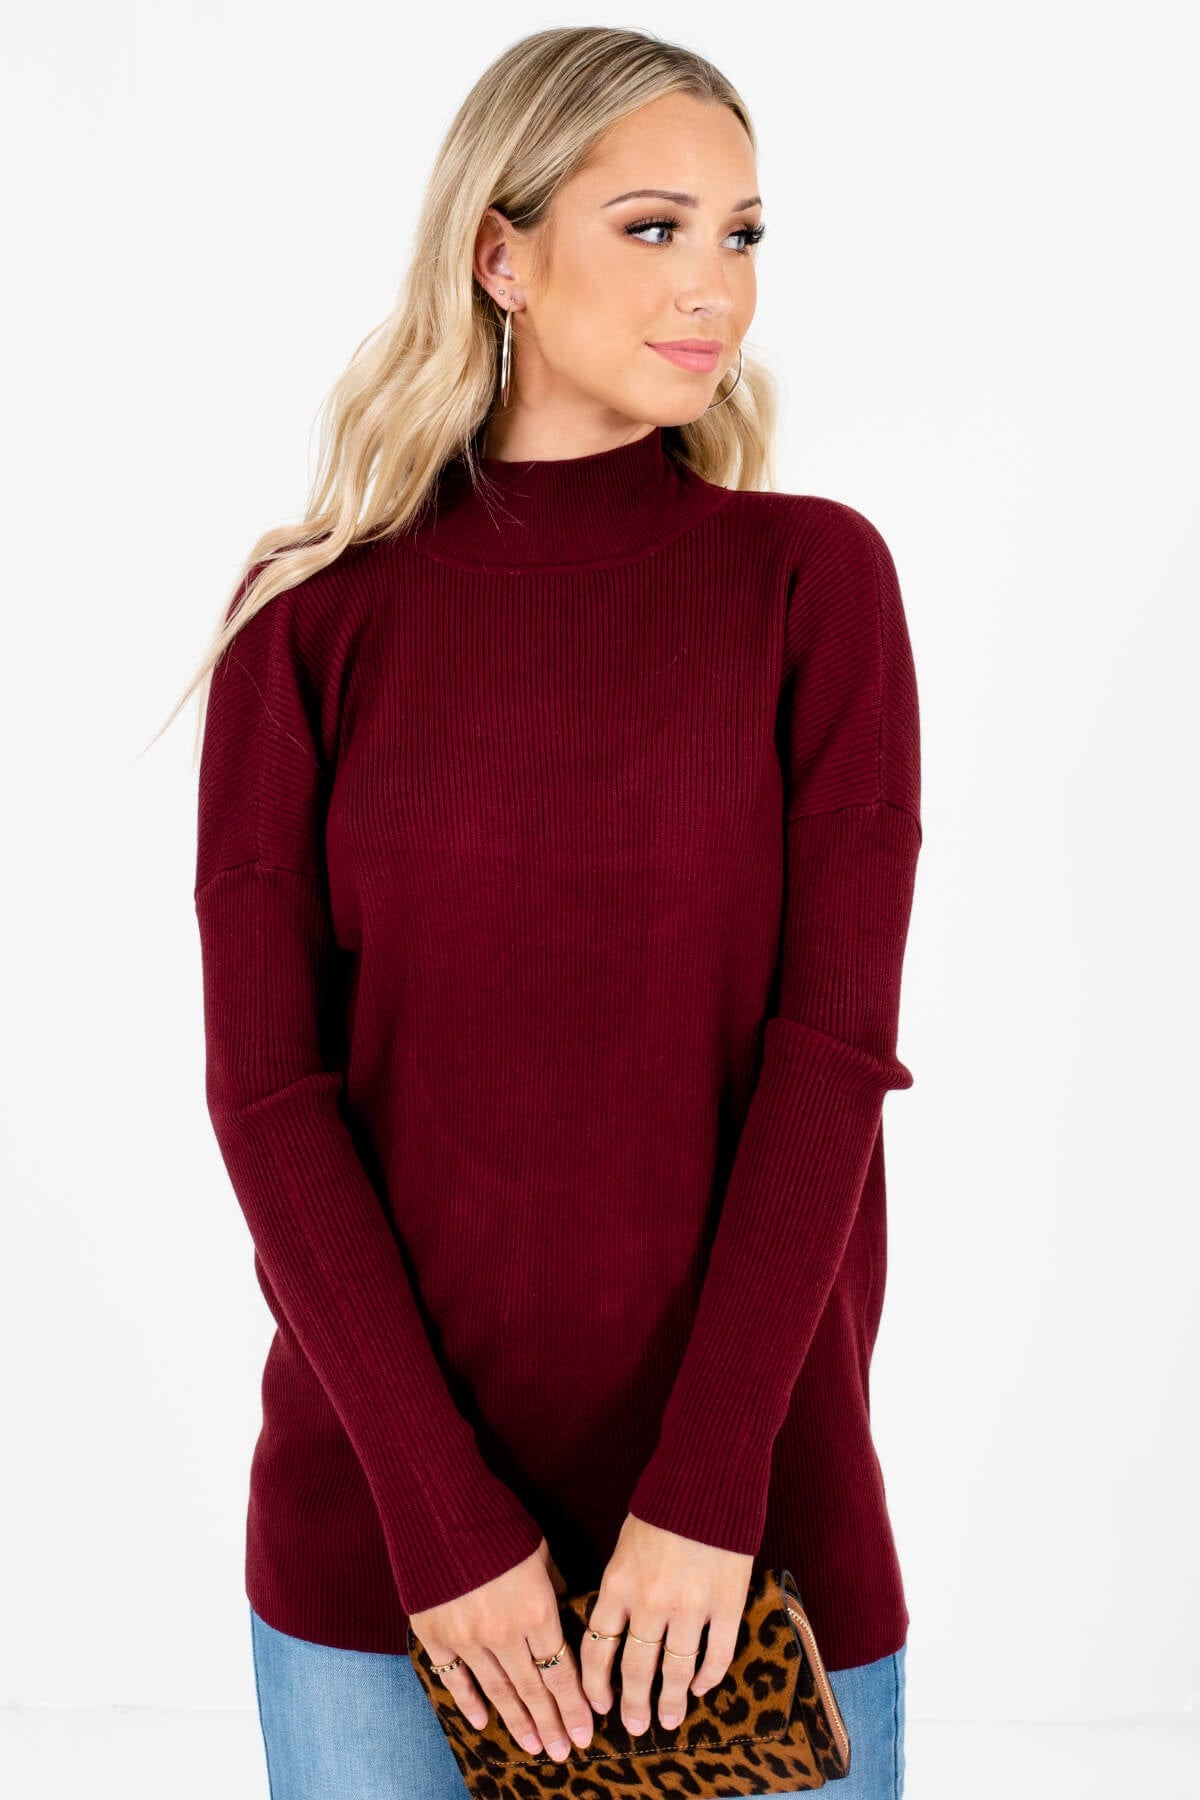 Burgundy Open Back Style Boutique Sweaters for Women